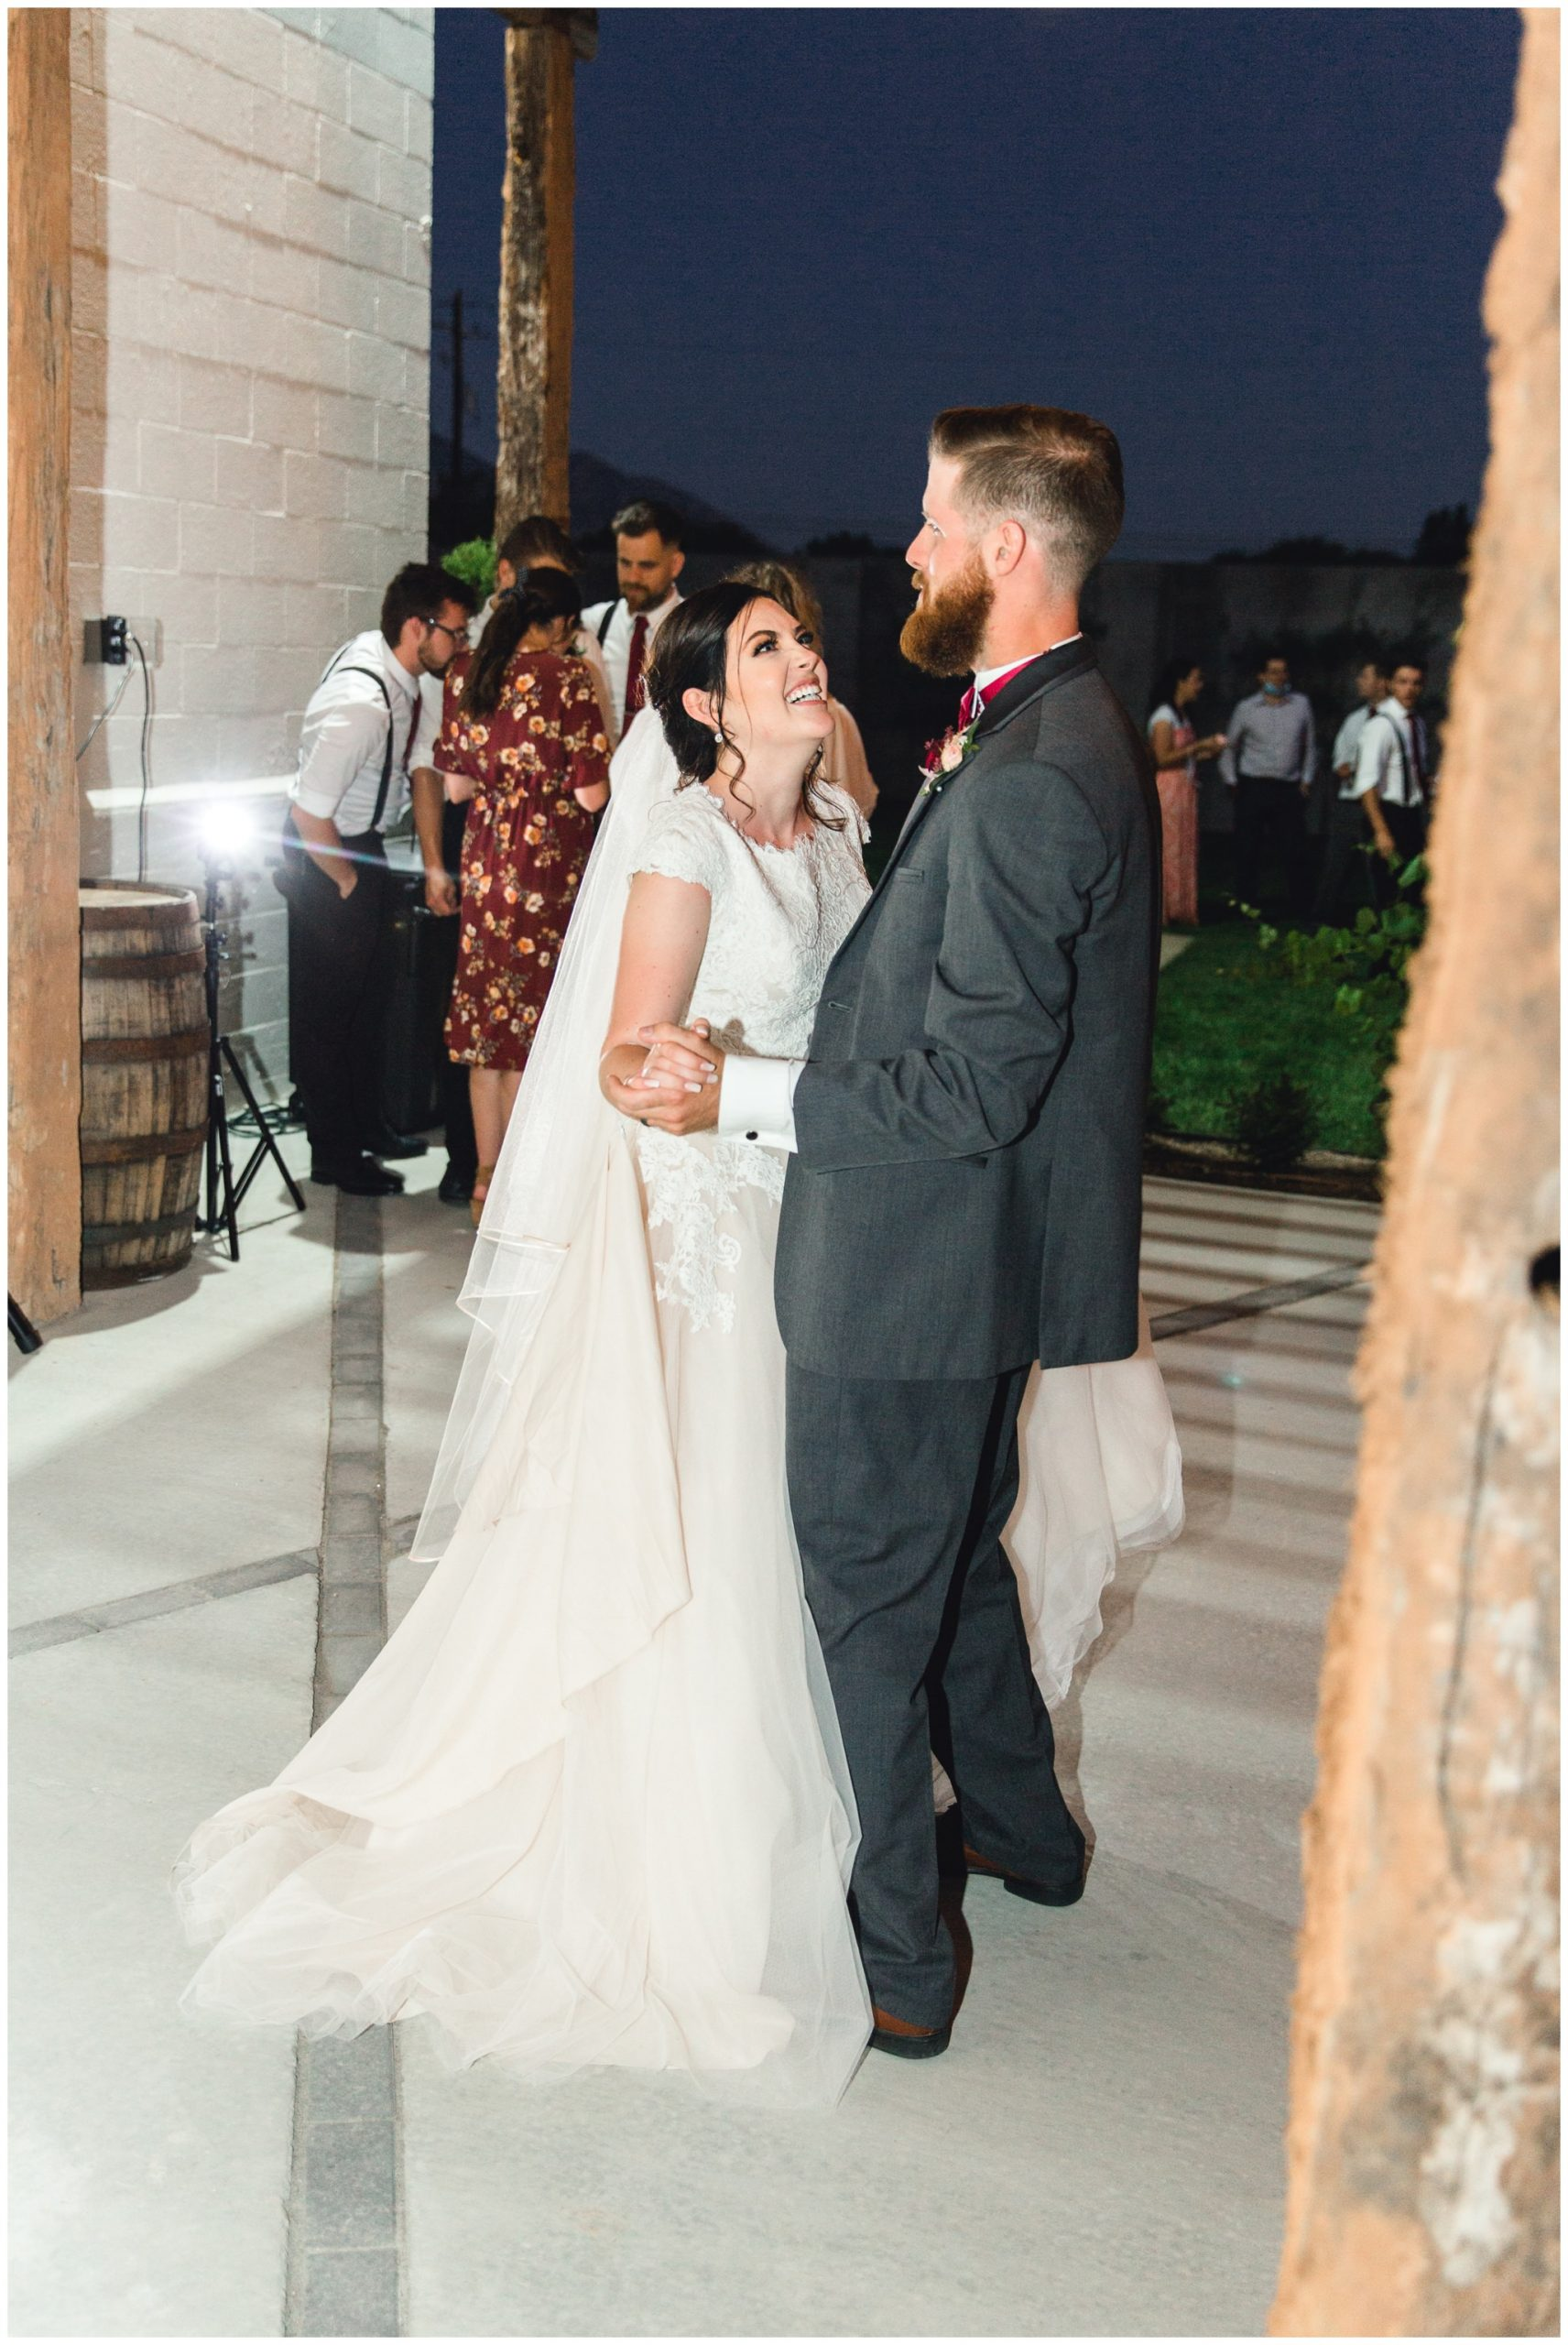 Bride and groom laughing at their wedding reception while dancing together outside of their venue